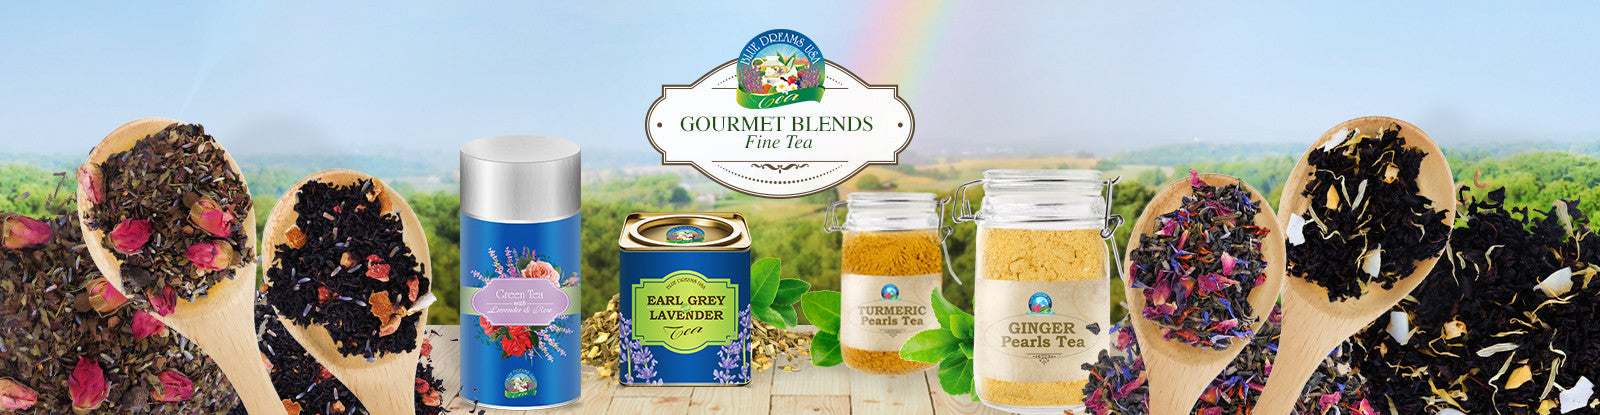 Tea - Organic Gourmet Blends of Tea